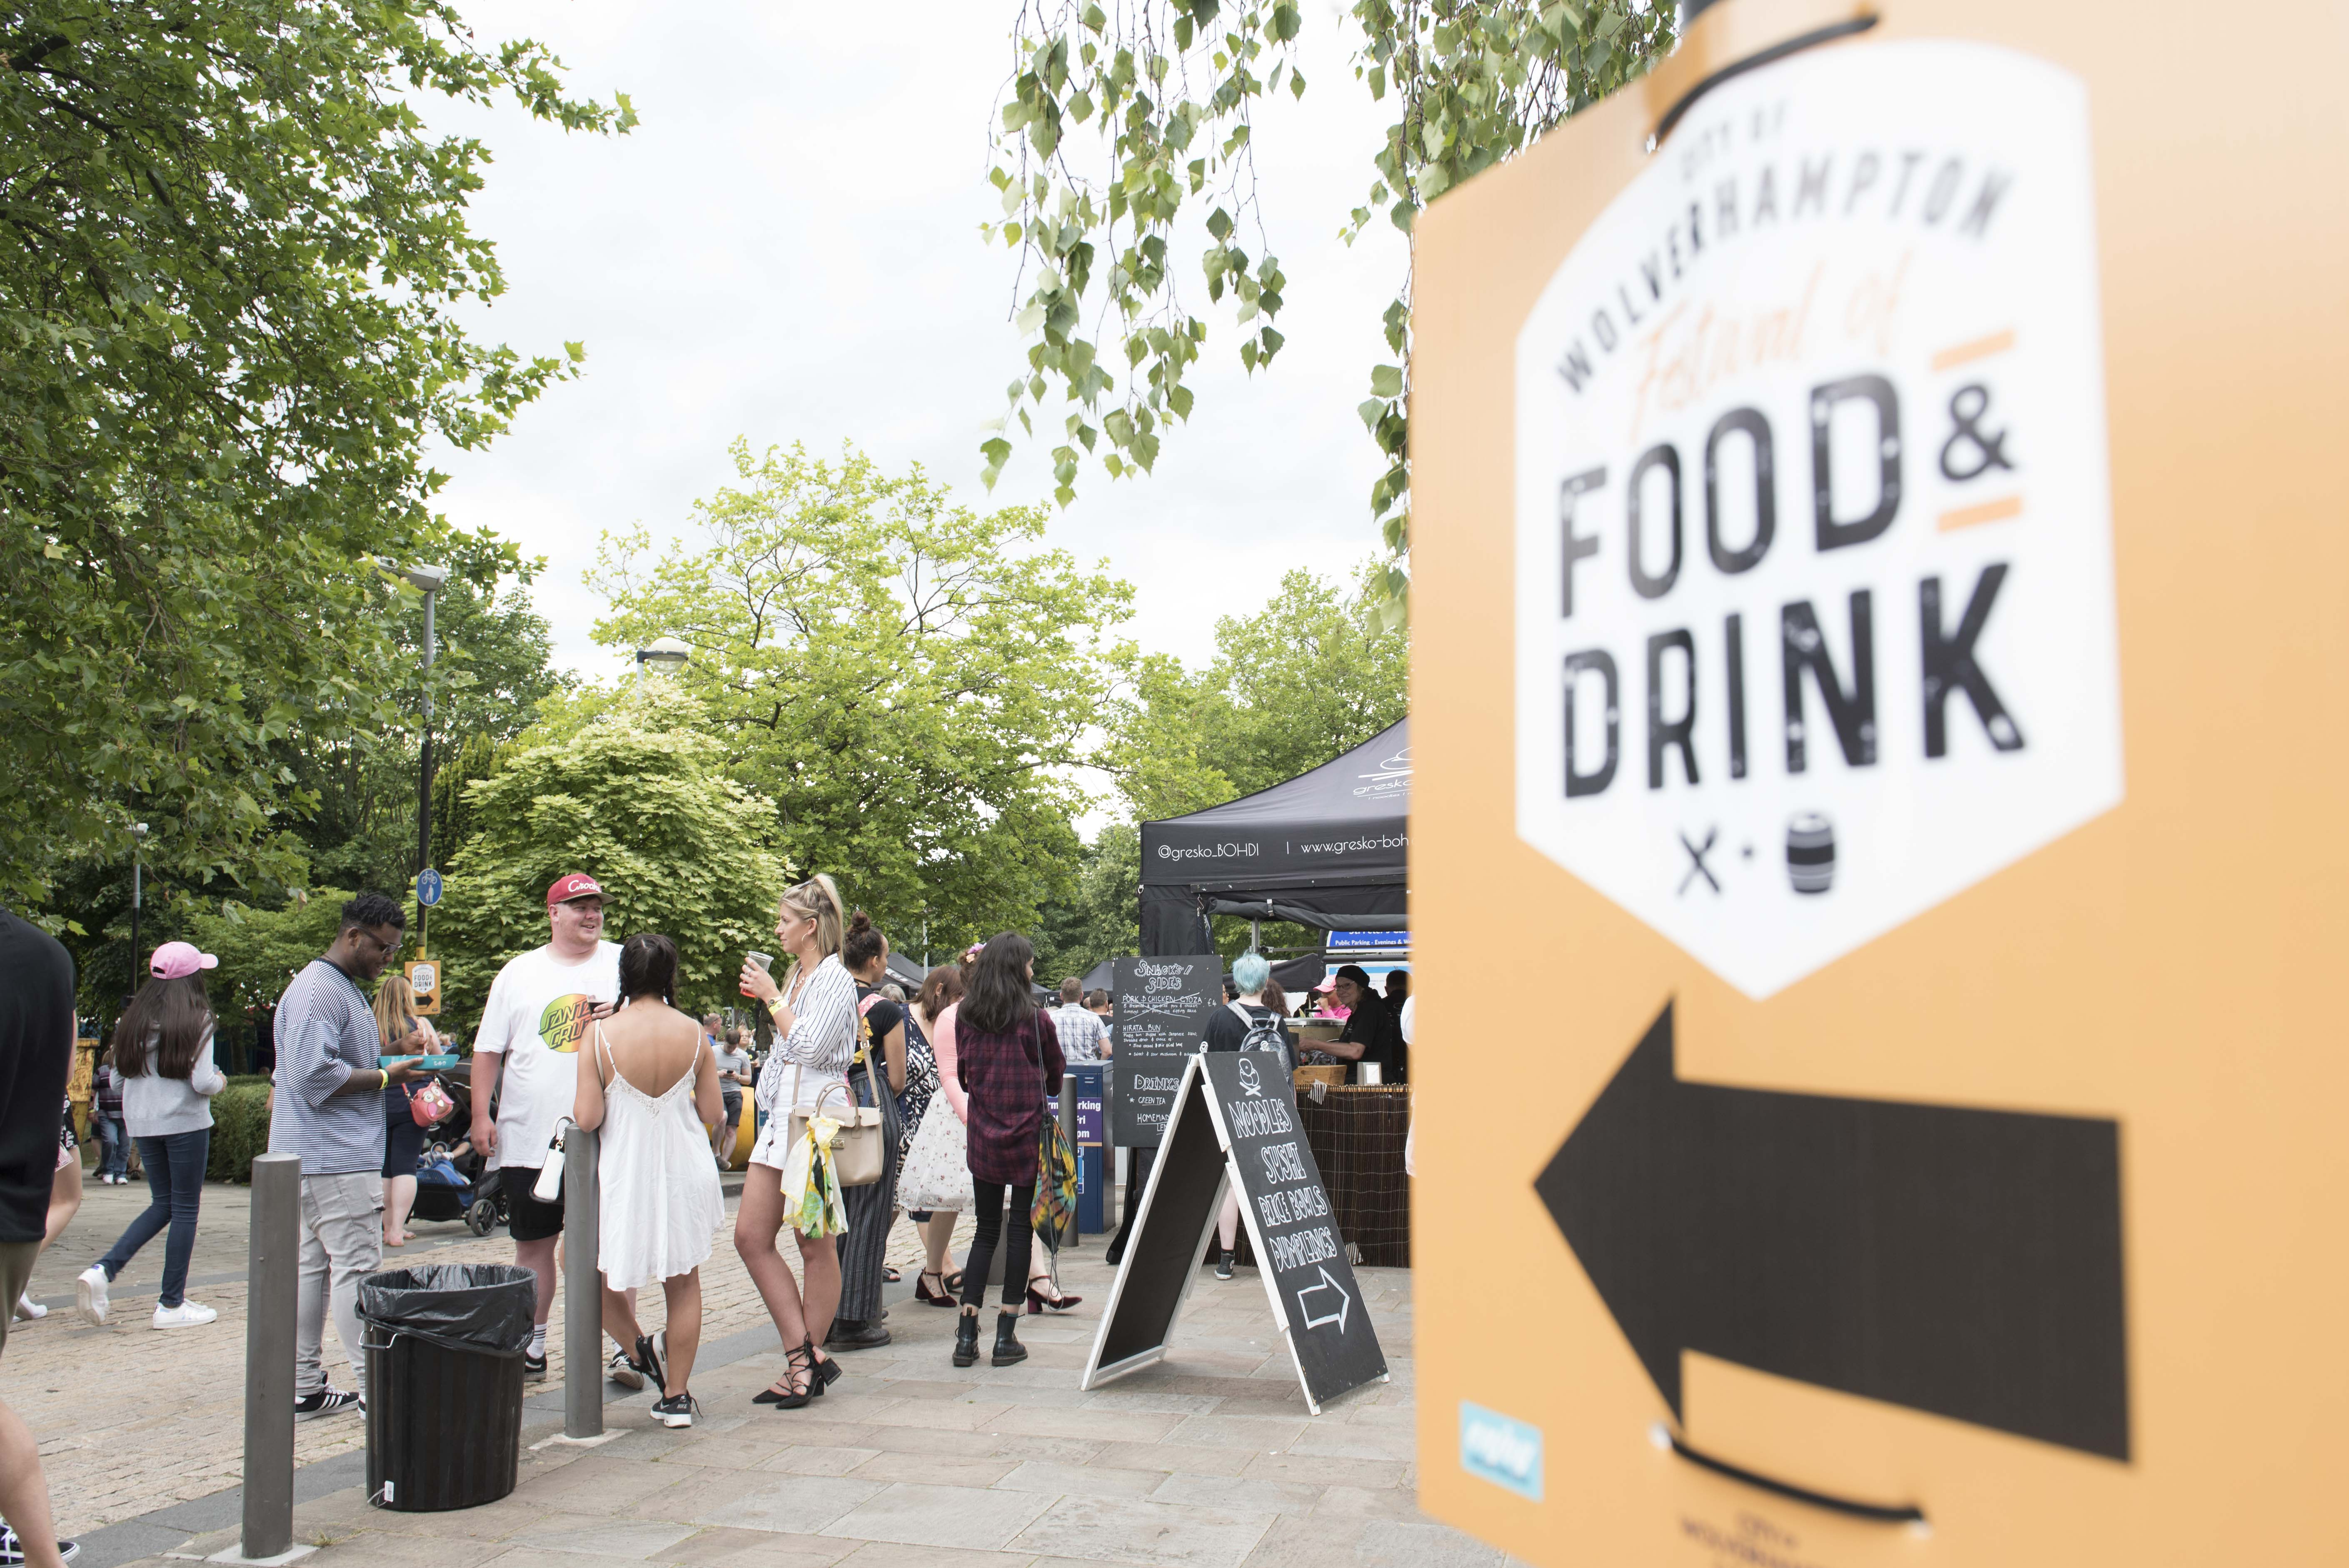 Just 3 weeks to get free Festival of Food & Drink tickets